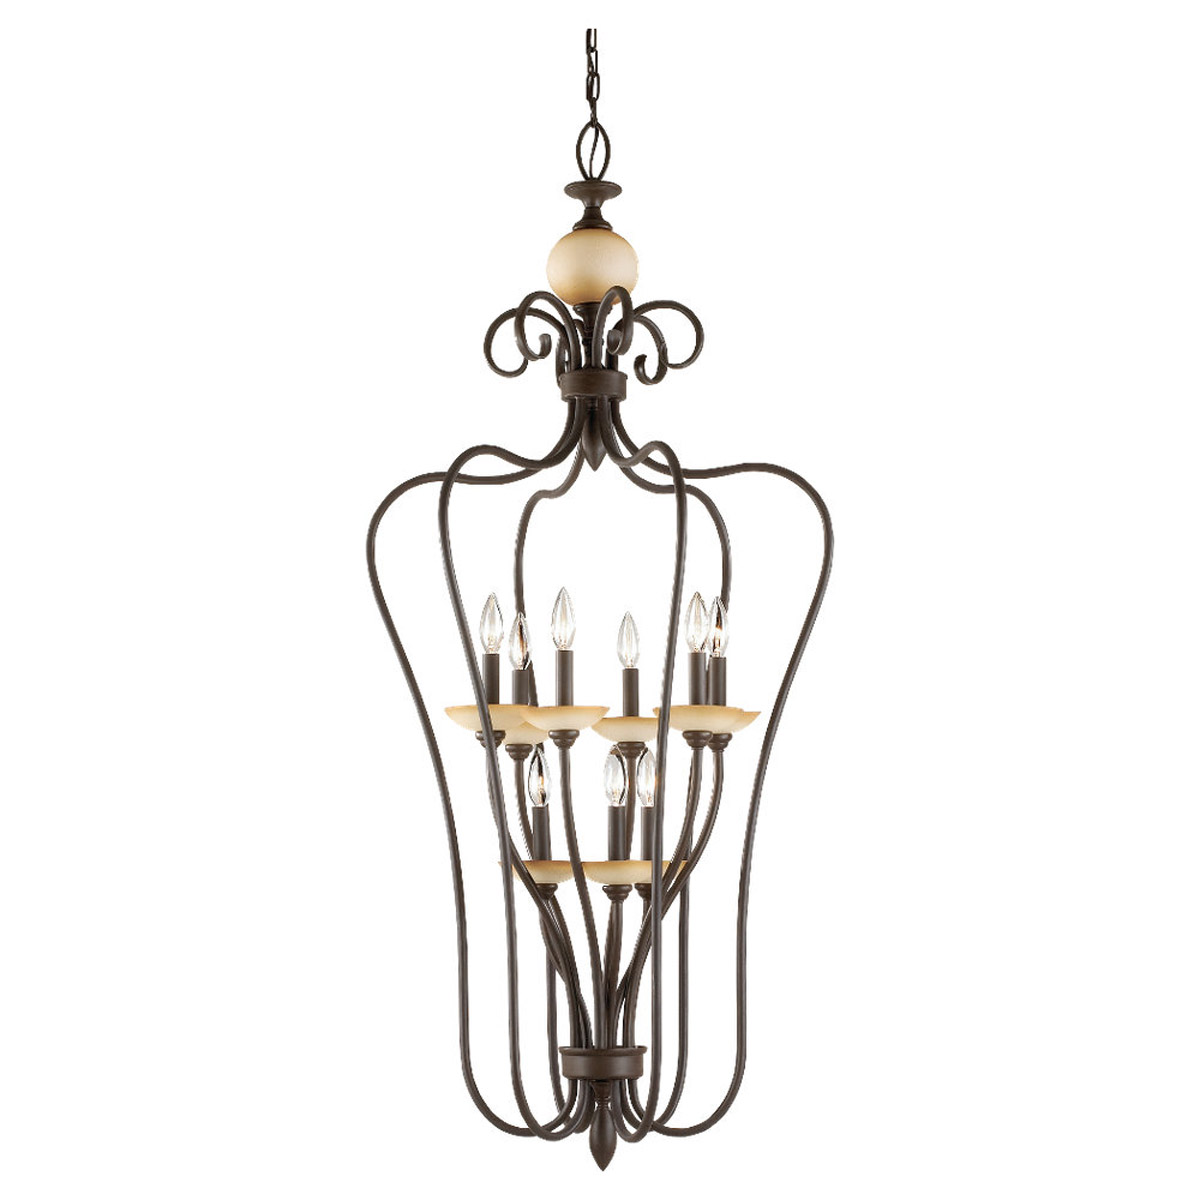 Sea Gull Lighting Montclaire 9 Light Foyer Pendant in Olde Iron 51107-72